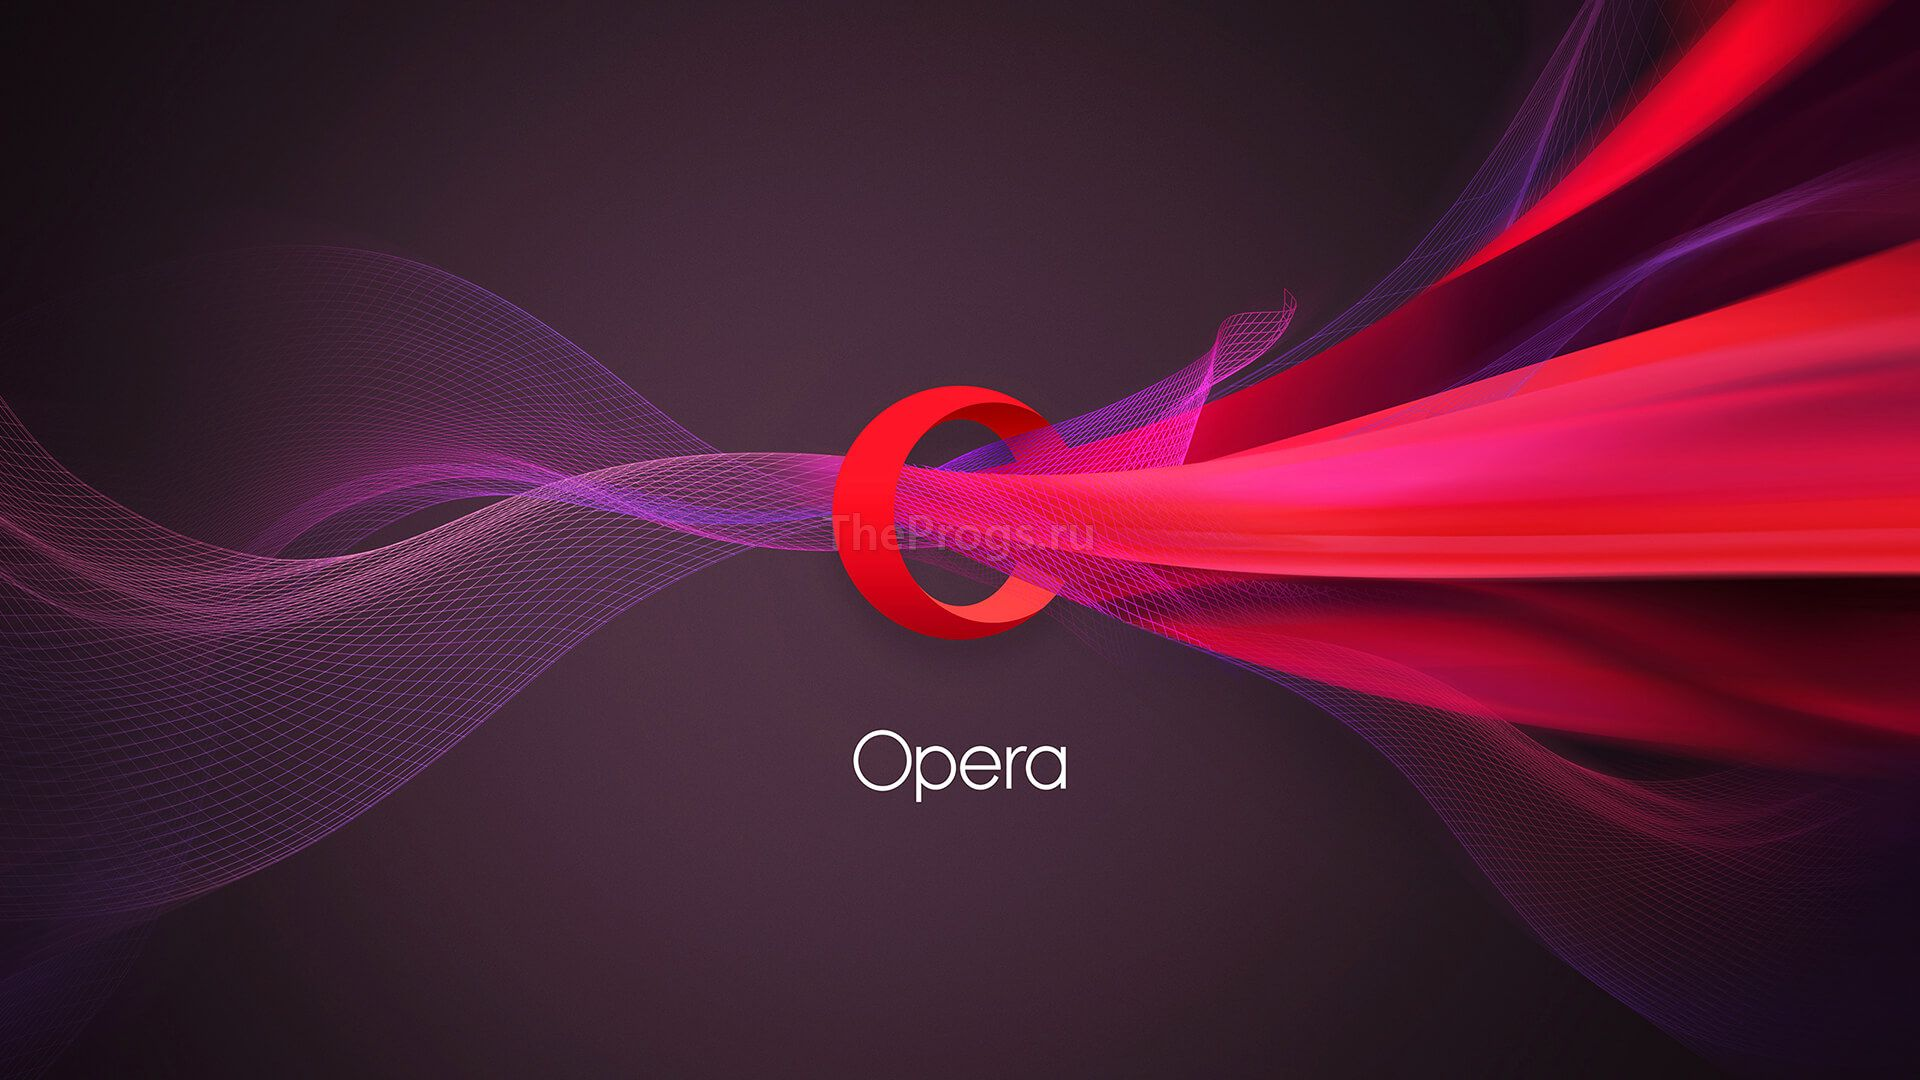 Opera laptop background wallpaper